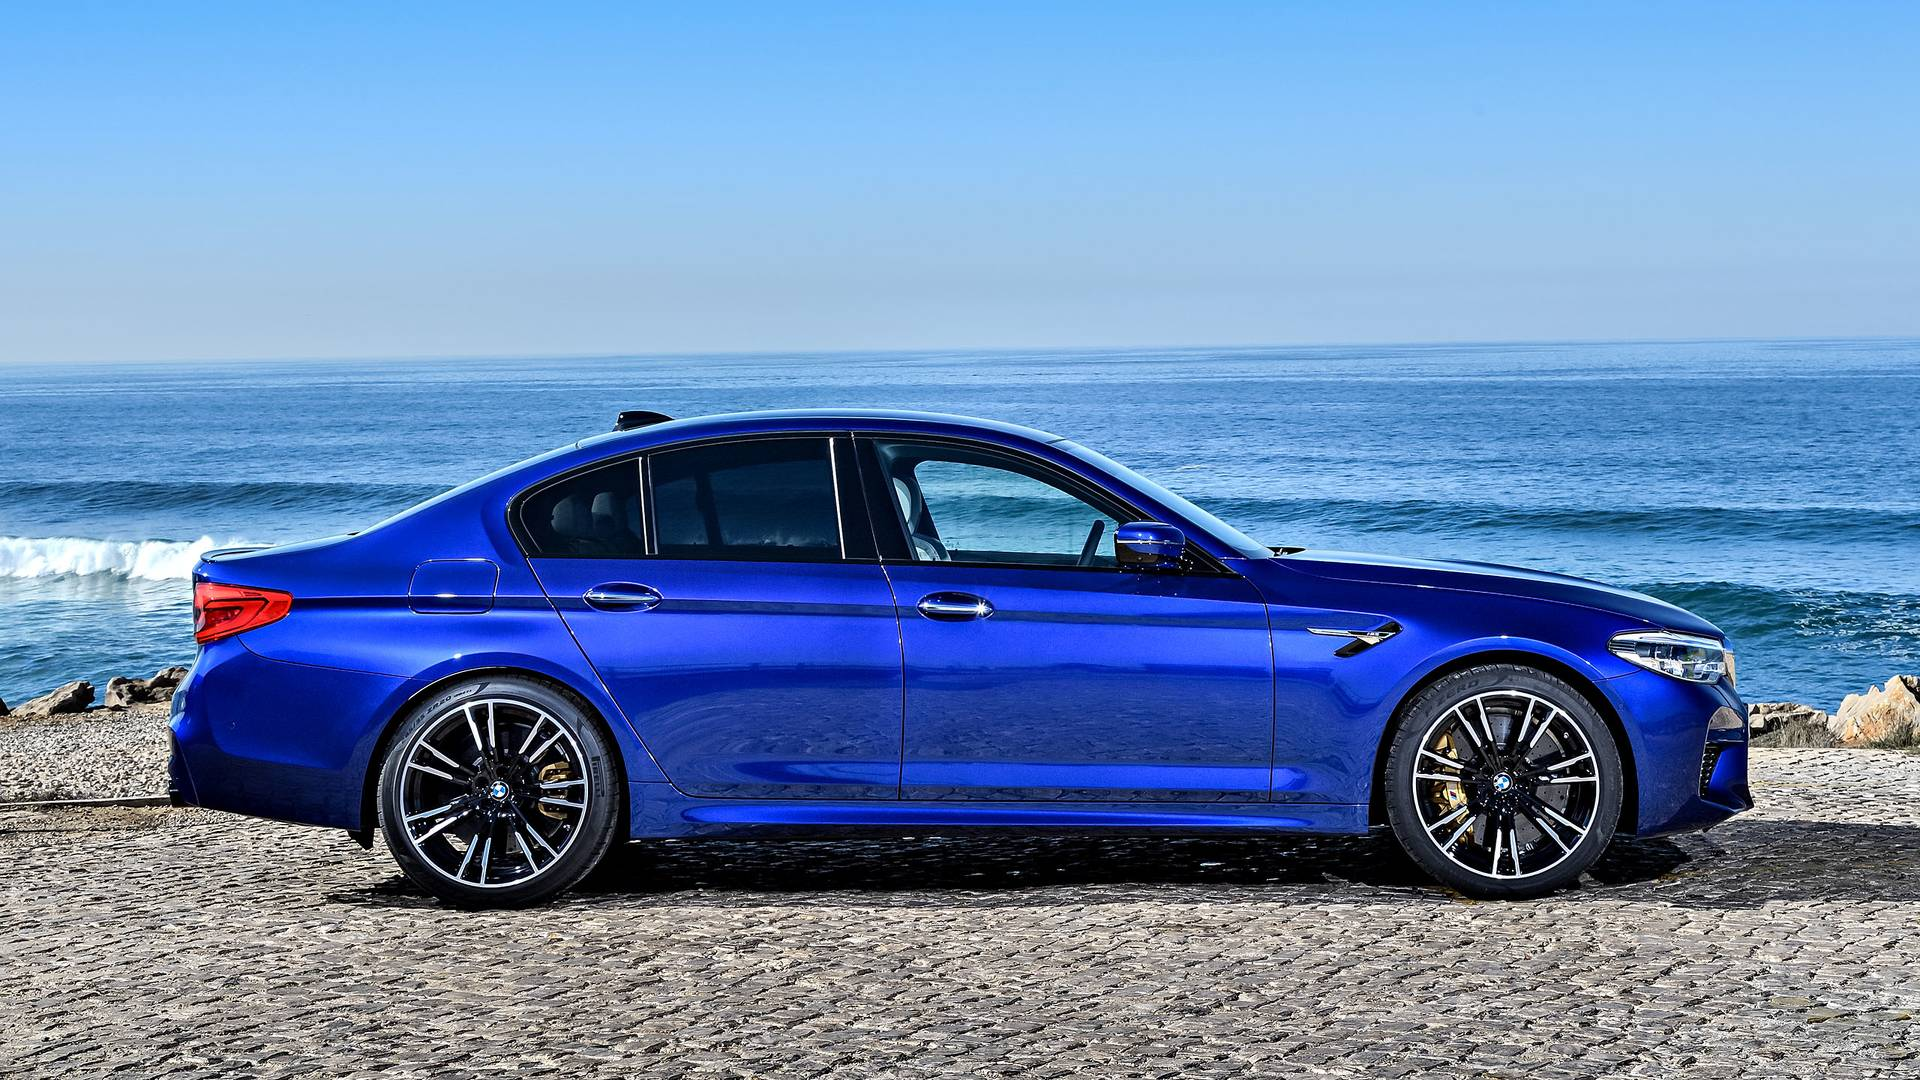 Watch The 2019 Bmw M5 Lap The Nurburgring In 7 38 92